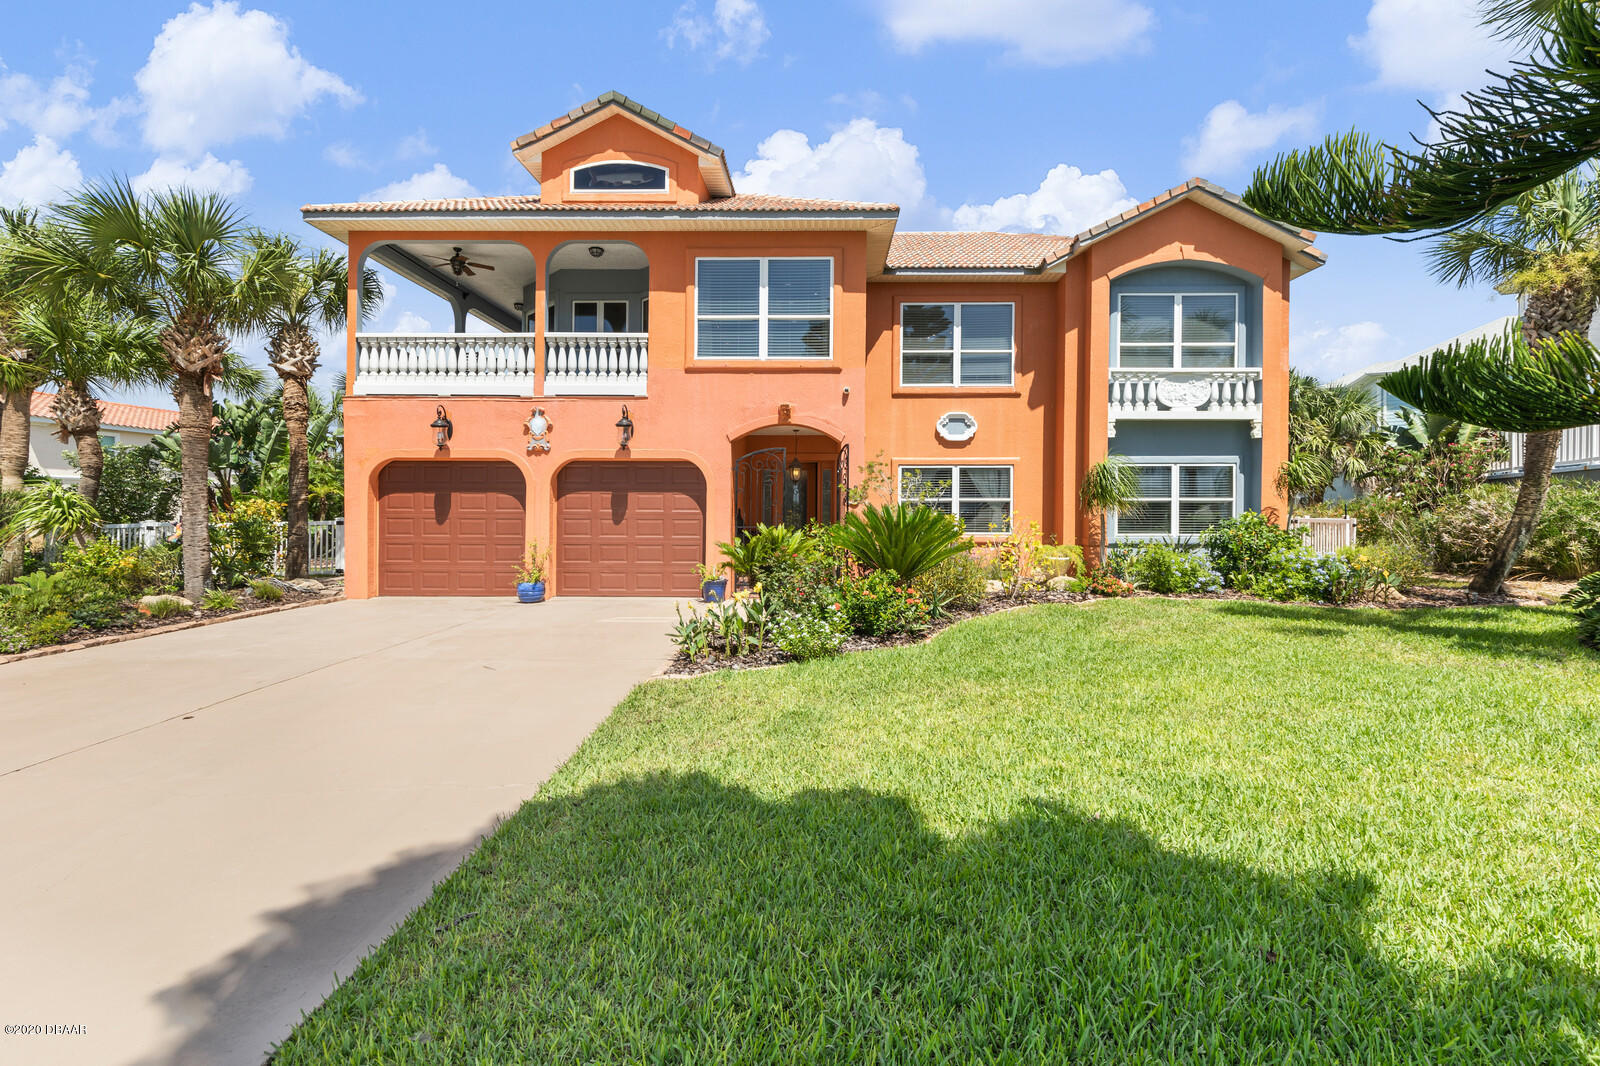 Details for 103 Capri Drive, Ormond Beach, FL 32176